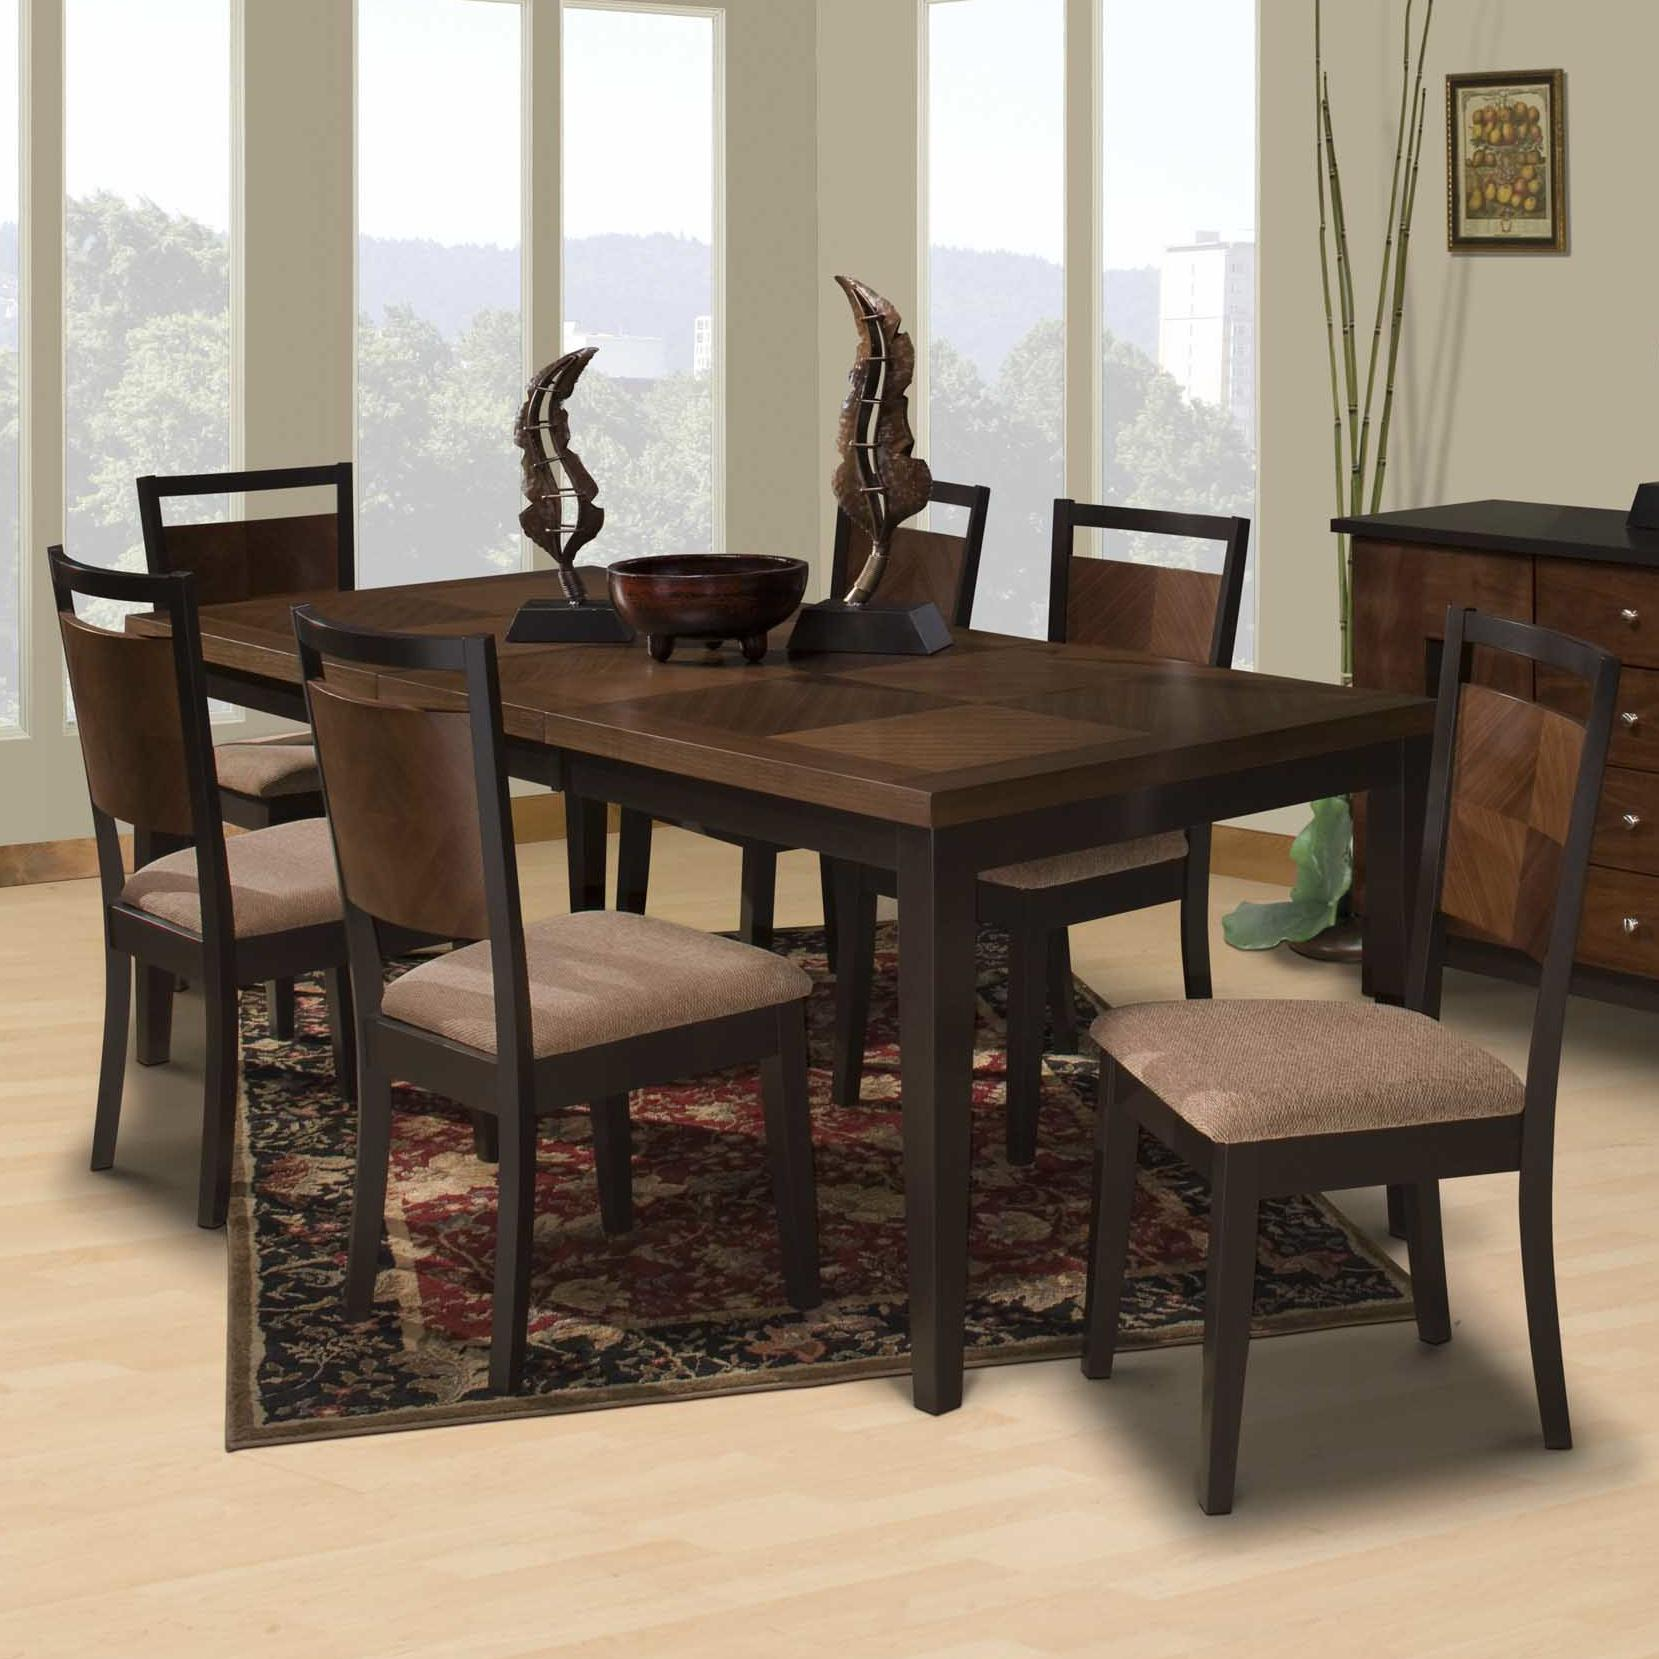 Furniture Rectangular Dining Table Shaker Rectangular Dining Table